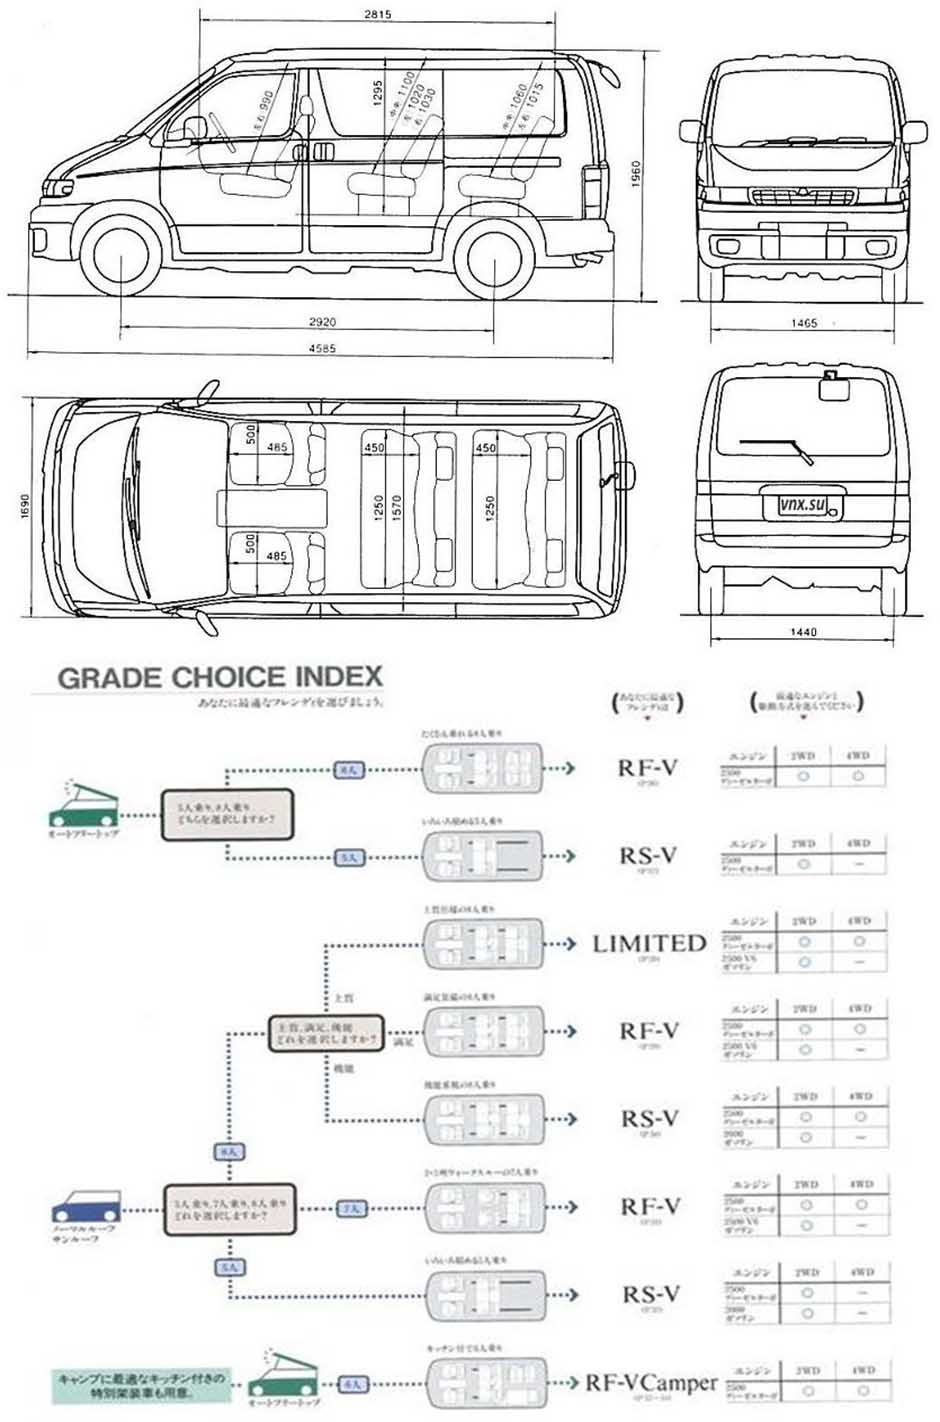 Ford F 150 4 2 Engine Diagram Control Wiring F150 6 Specifications Free Image For